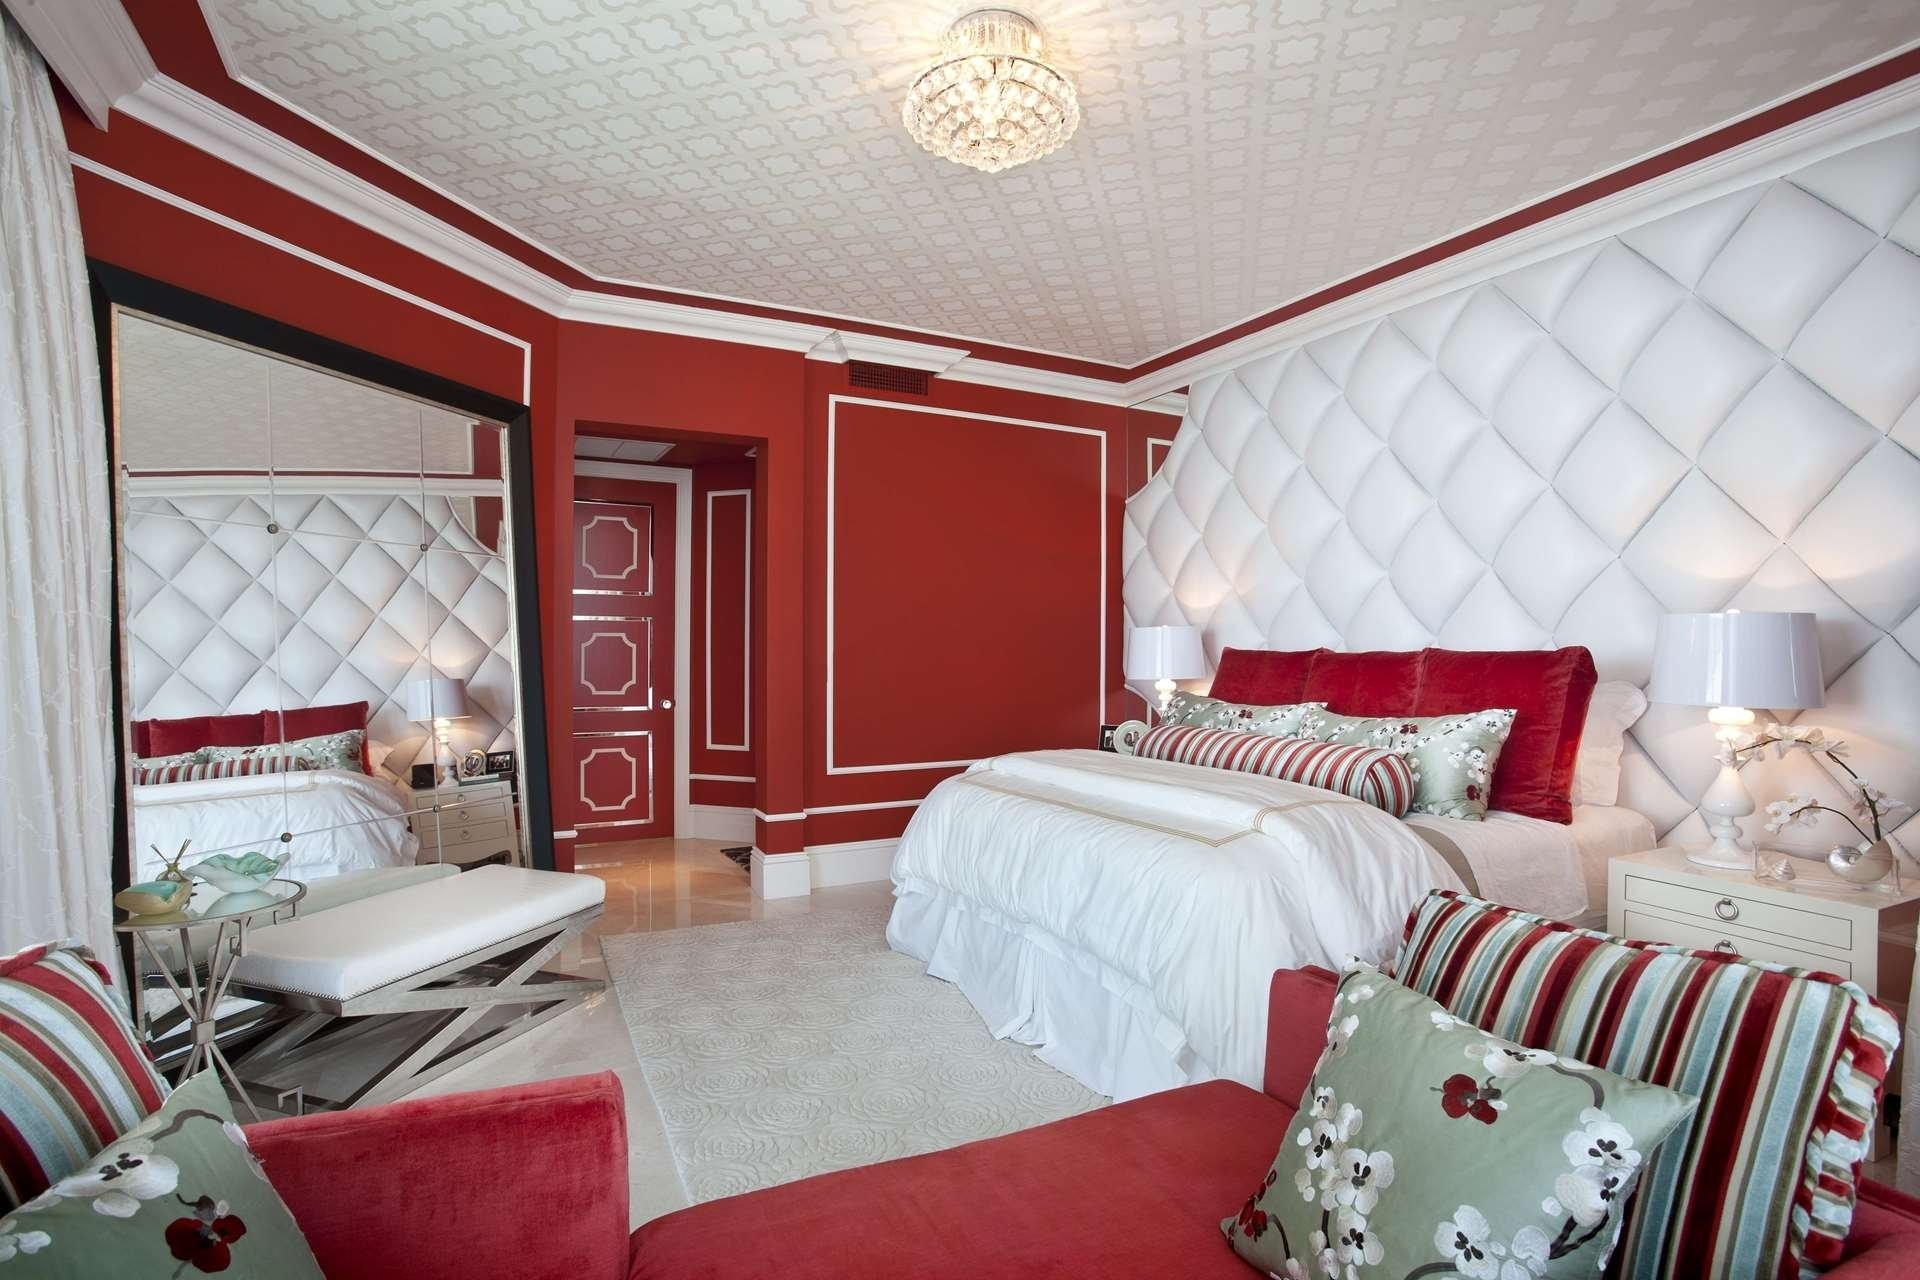 10 Cute Red Black And White Room Ideas bedroom design ideas red bedroom design ideas red g ridit co 2020